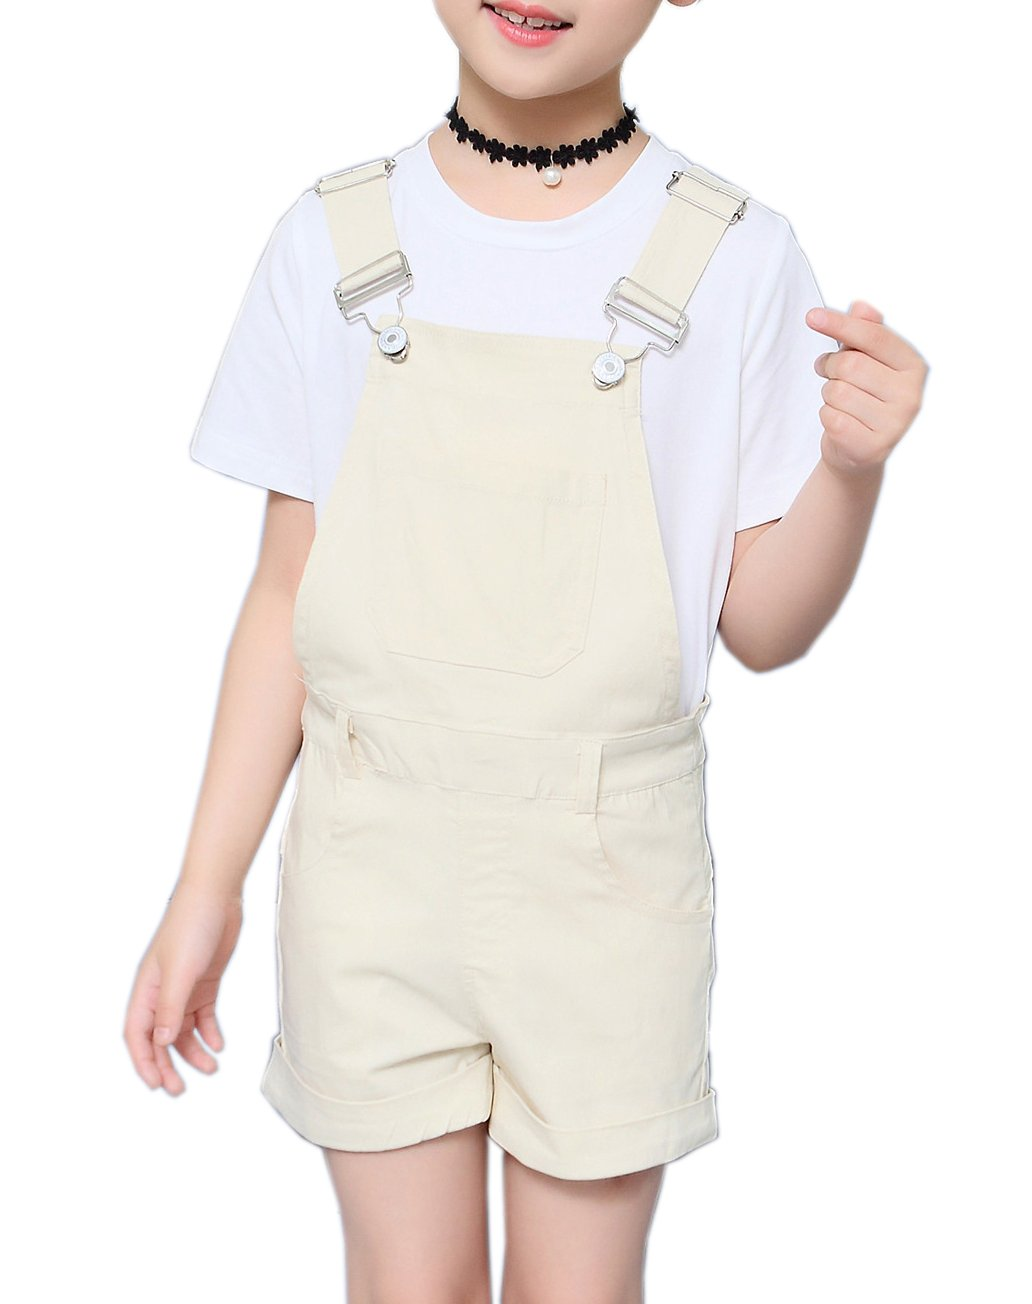 Sitmptol Big Girls Kids Cotton Overalls Jumpsuits Casual Shortalls Bib Romper Beige 150